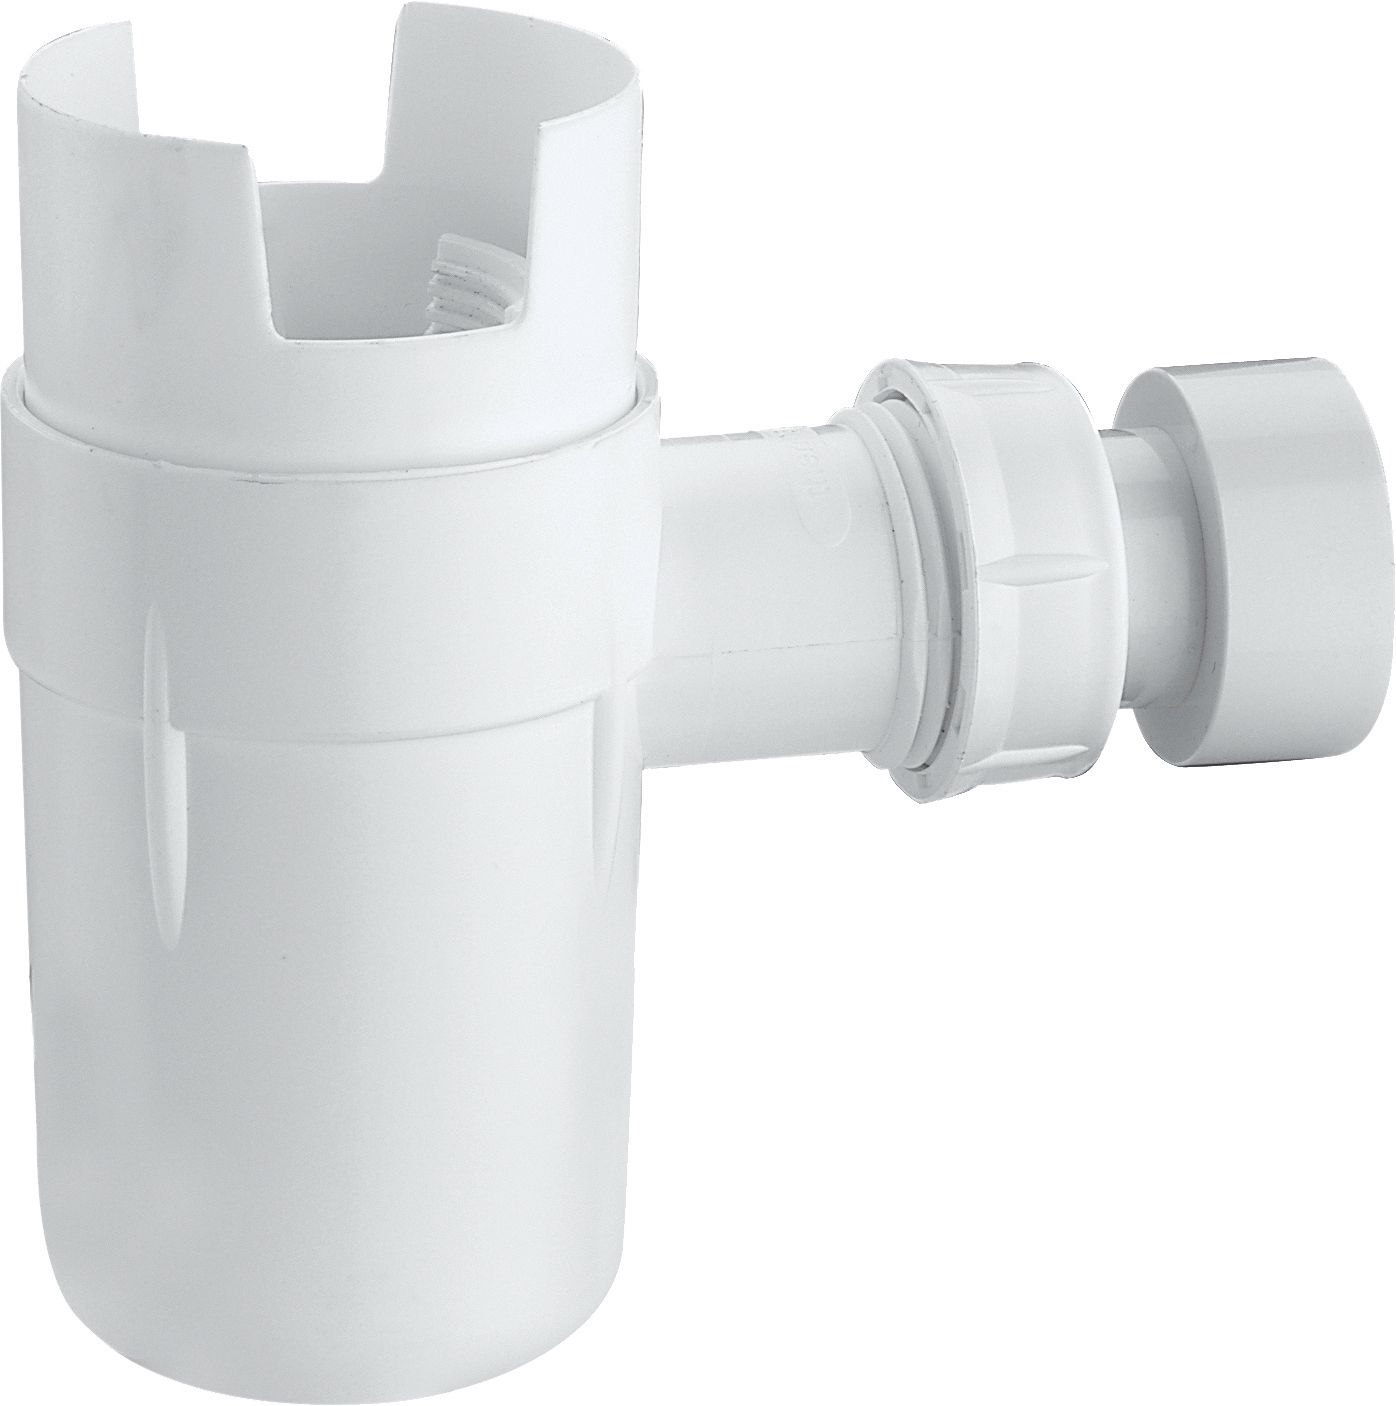 "SIPHON PVC PR GROUPE SECURITE 1""32"